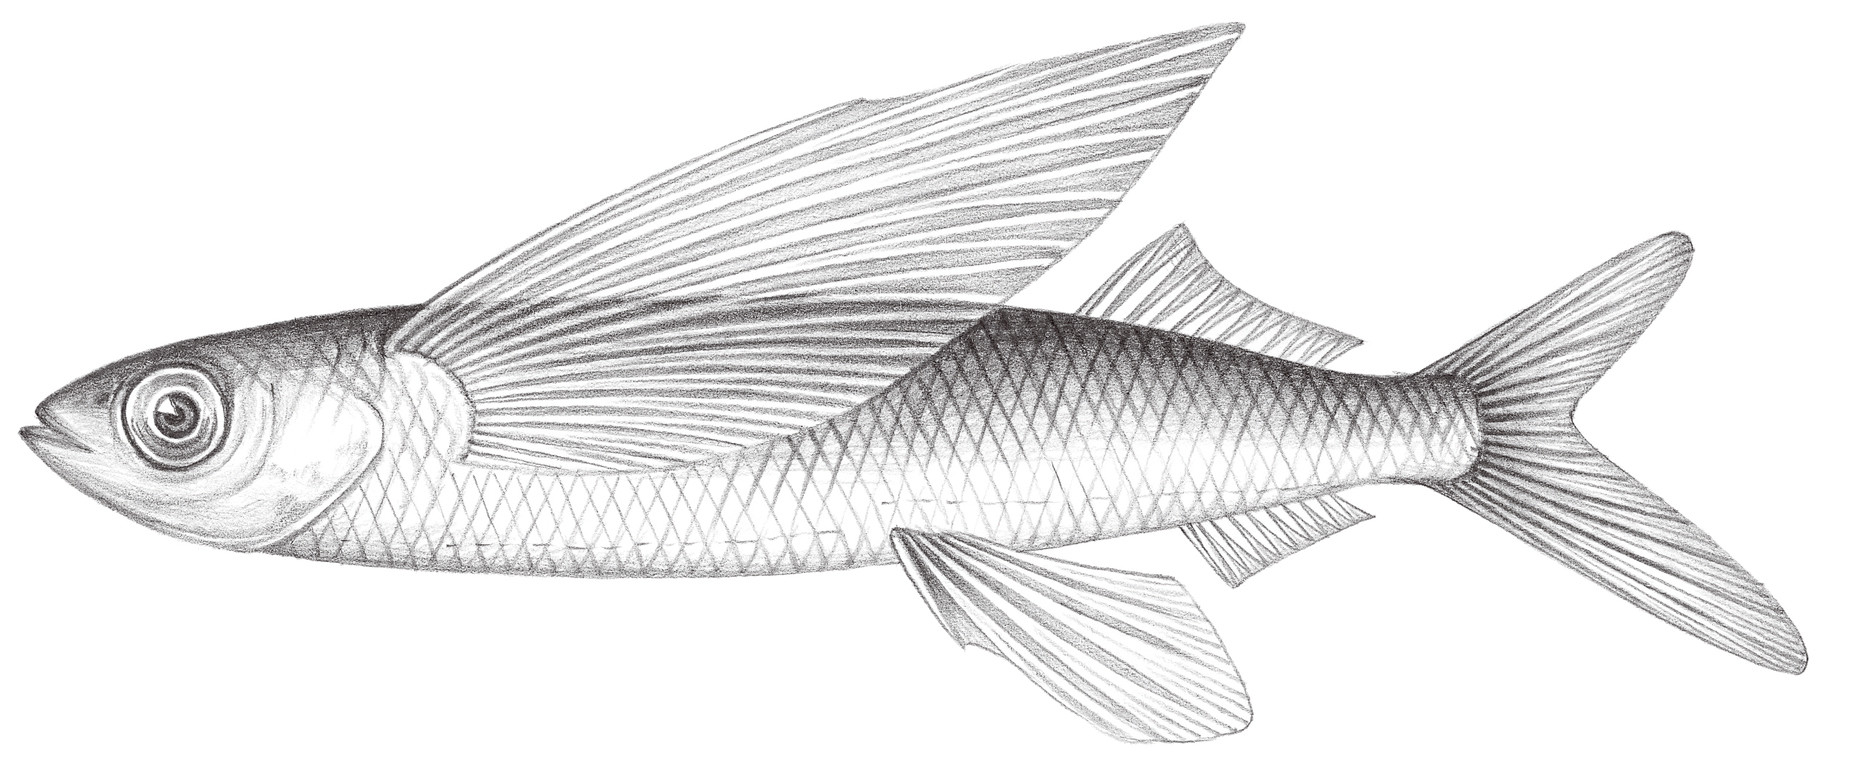 715.	白鰭鬚唇飛魚 Cheilopogon unicolor (Valenciennes, 1846)